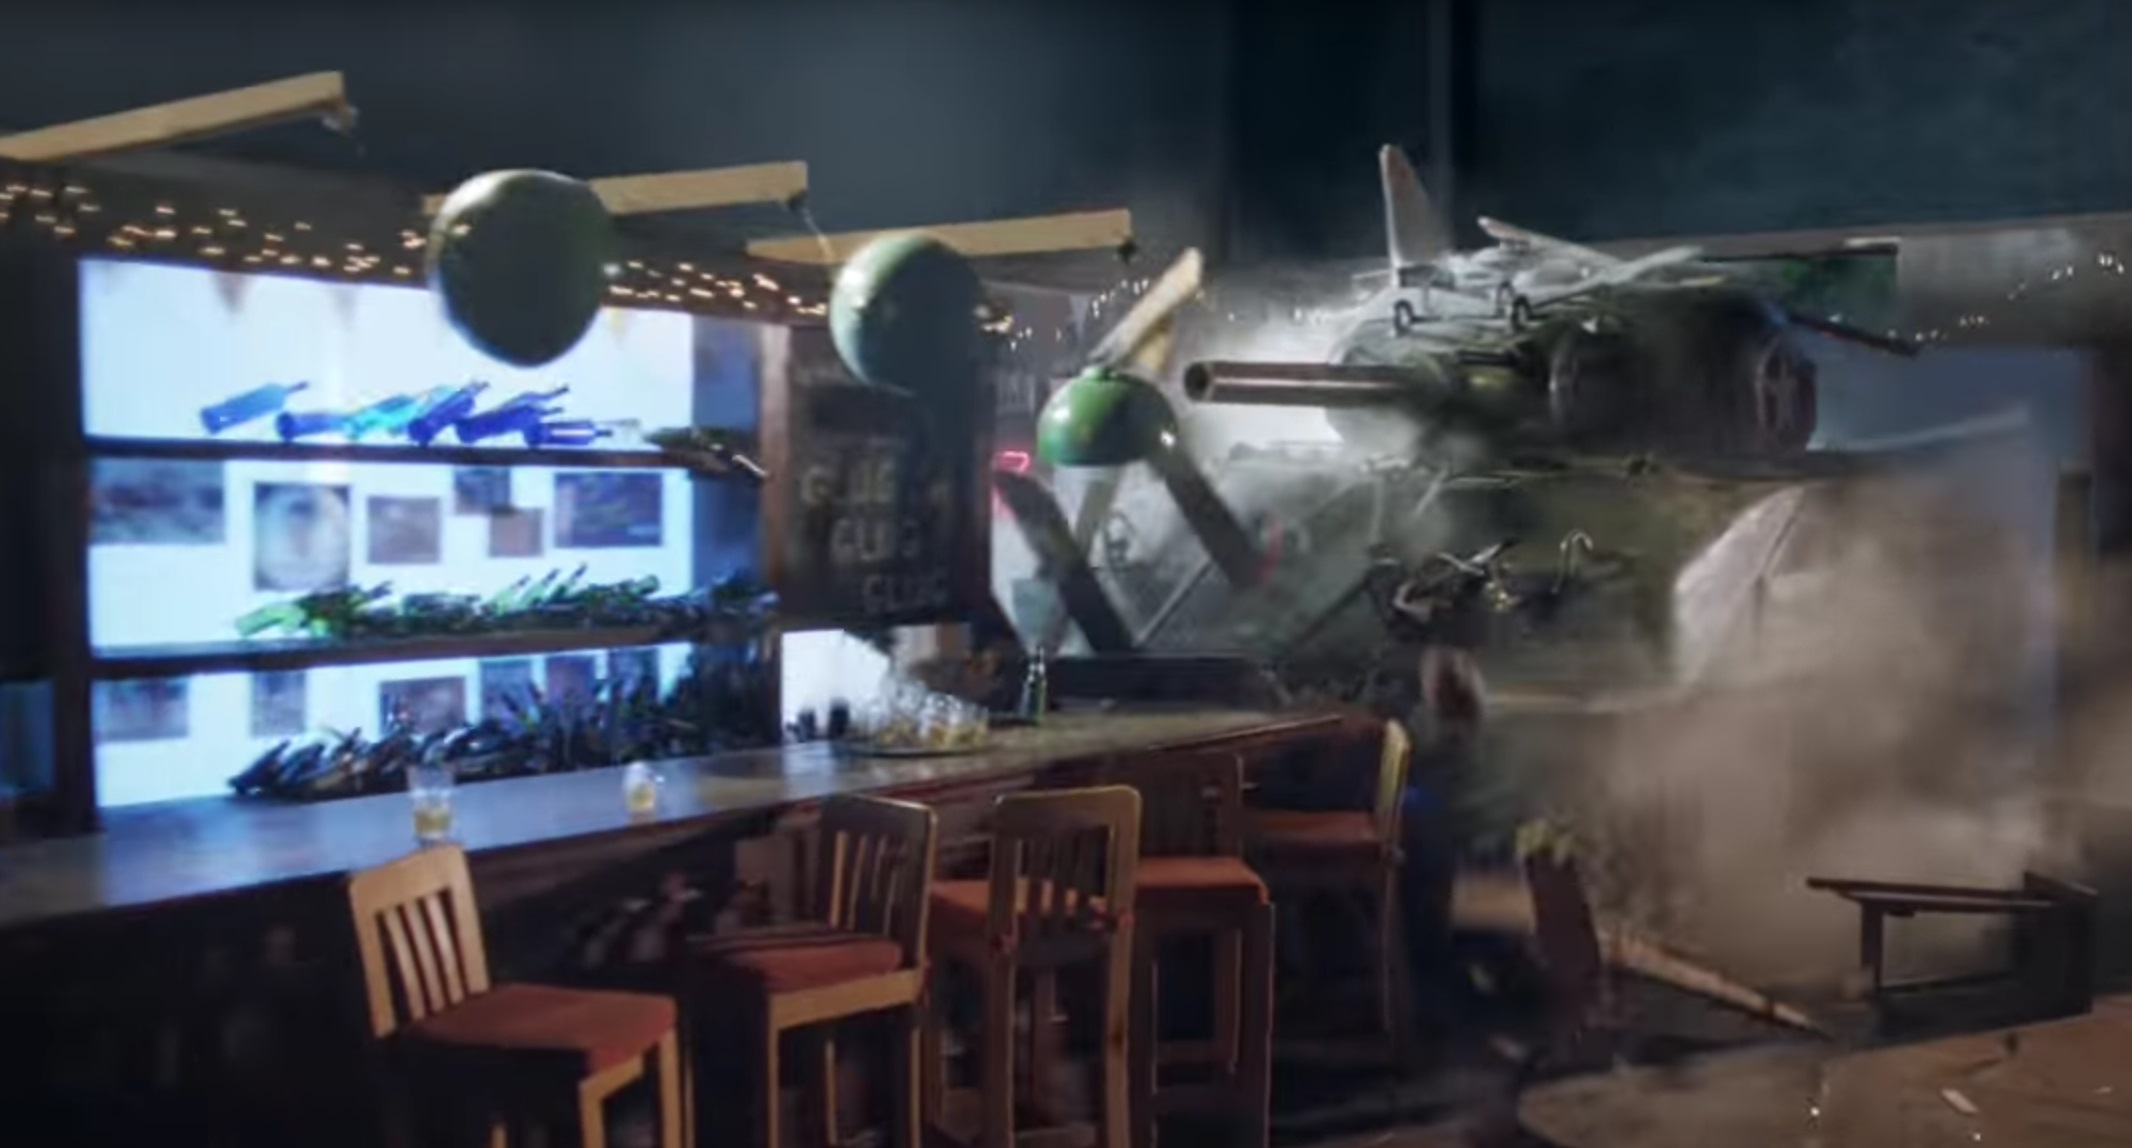 Tanks Rule as World of Tanks Super Bowl commercials smash stuff up